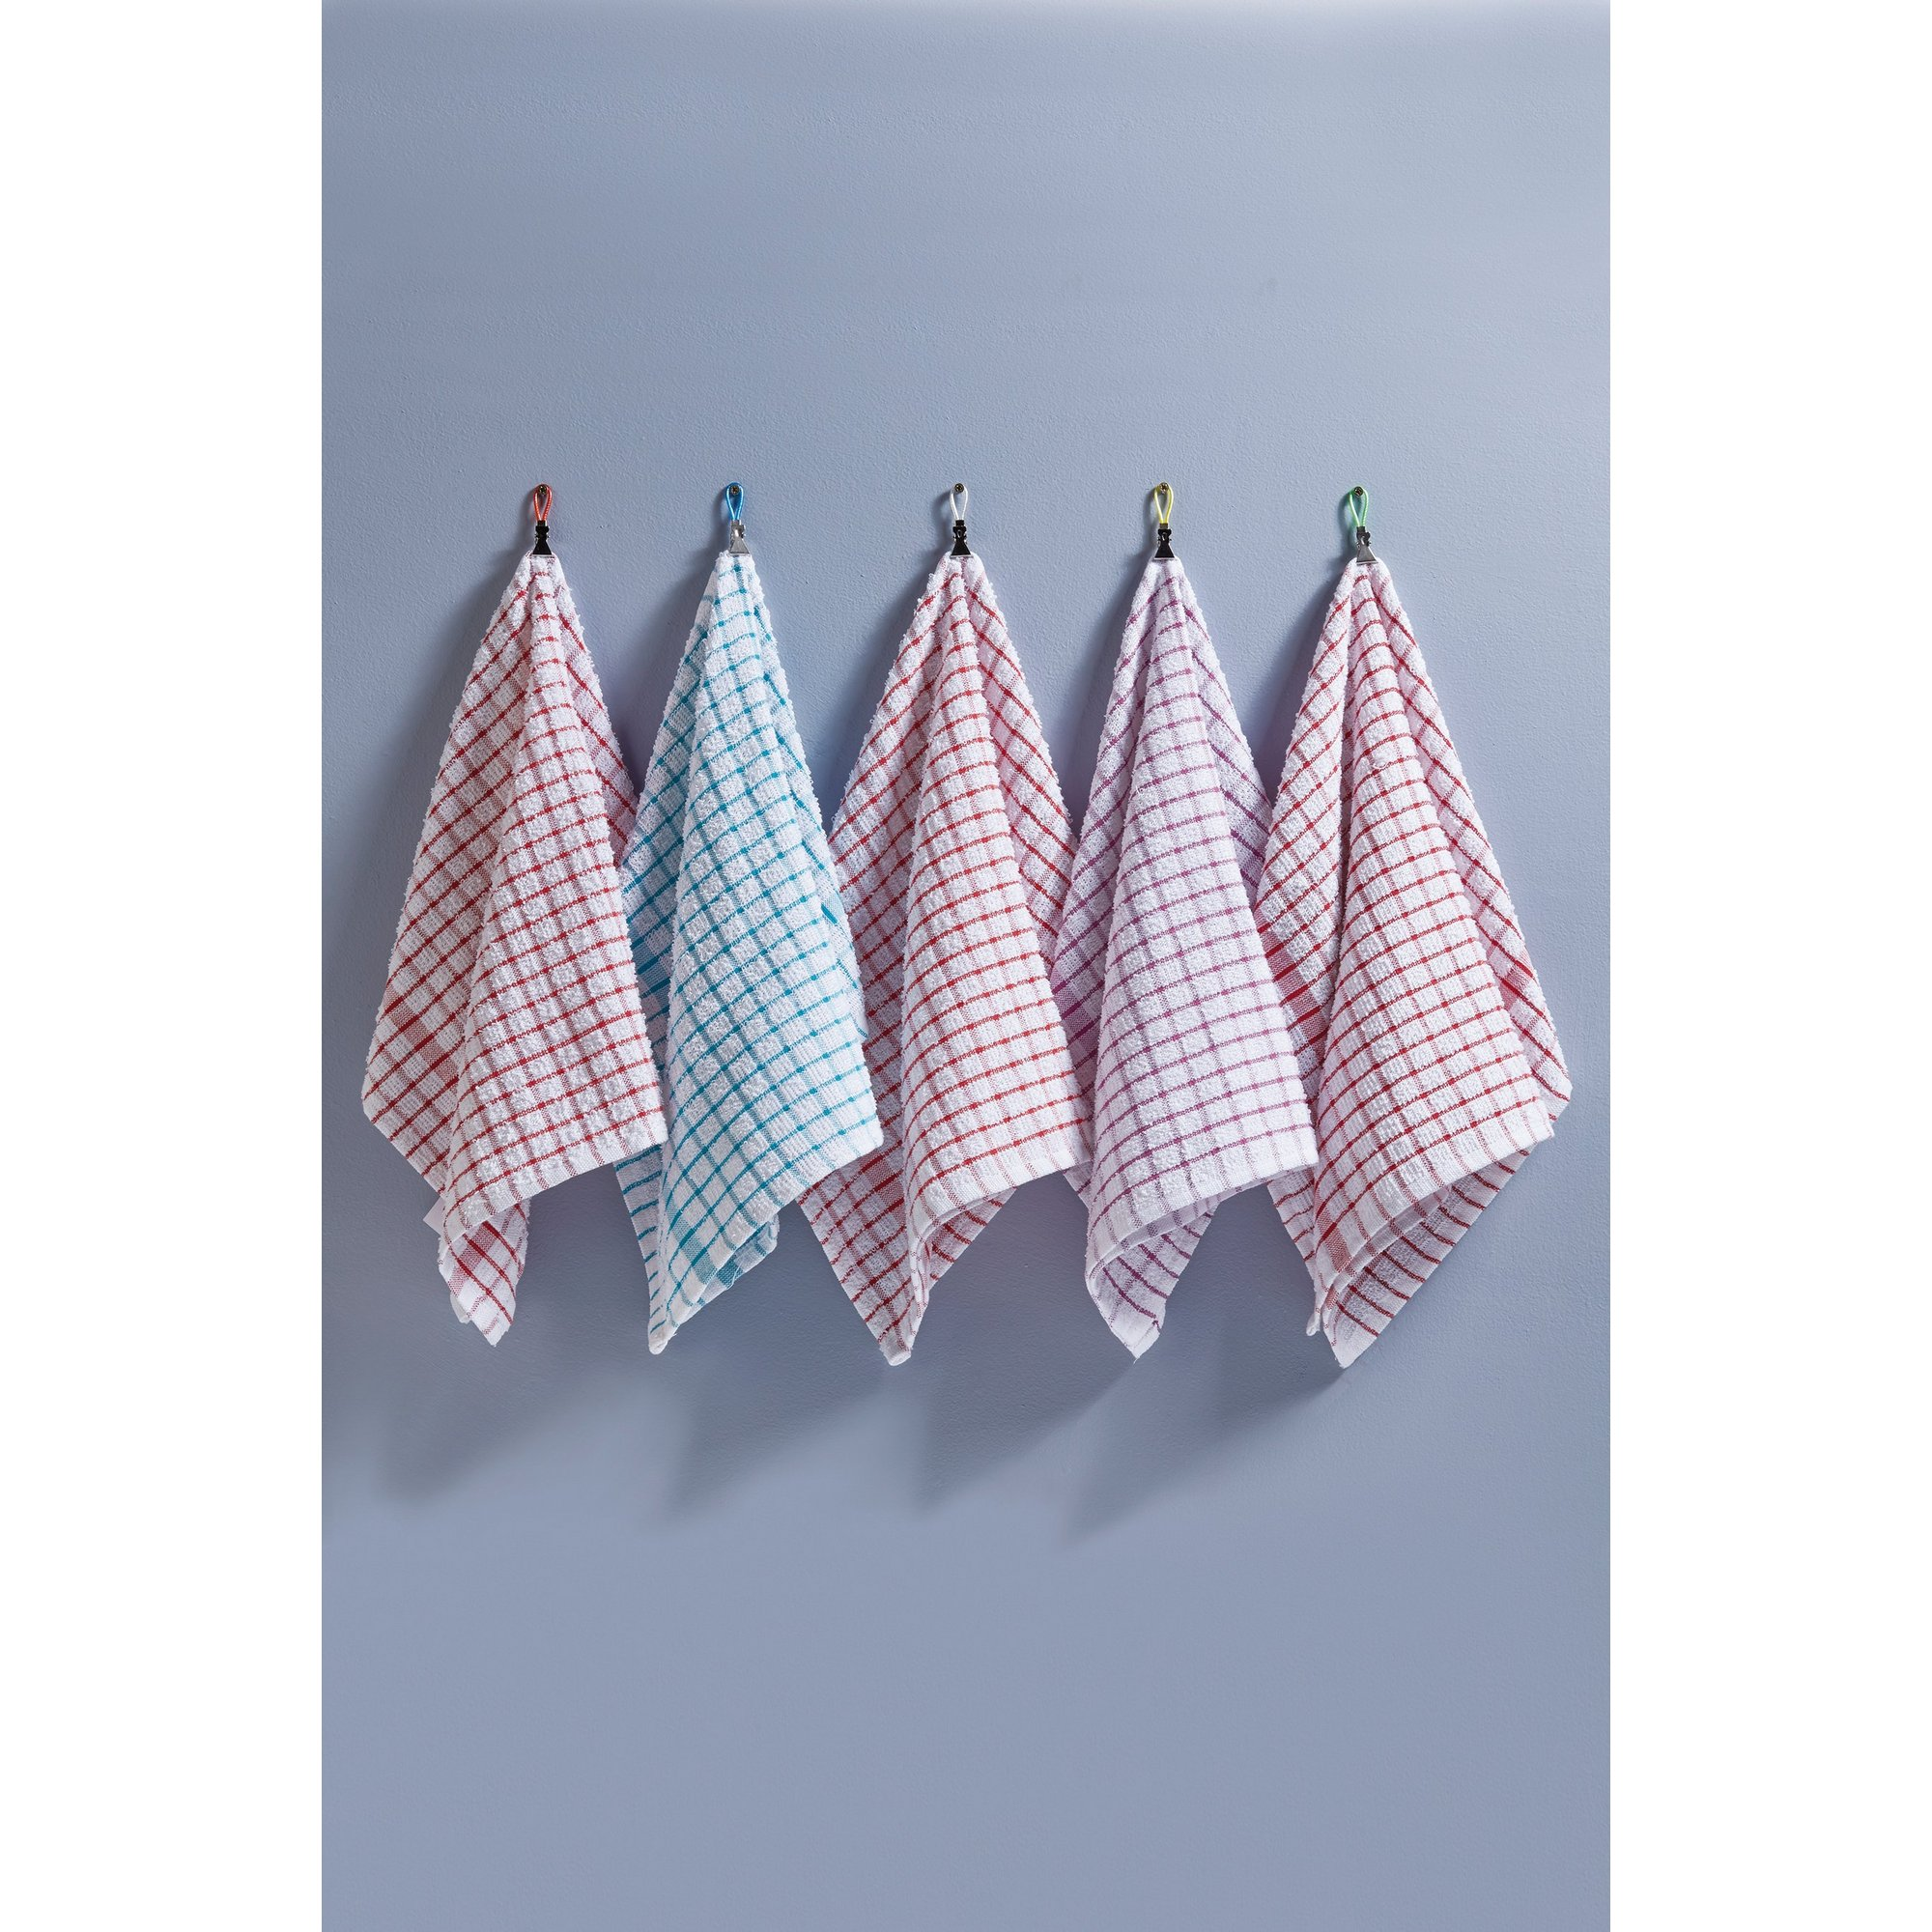 Image of 5 Pack Monocheck Tea Towels